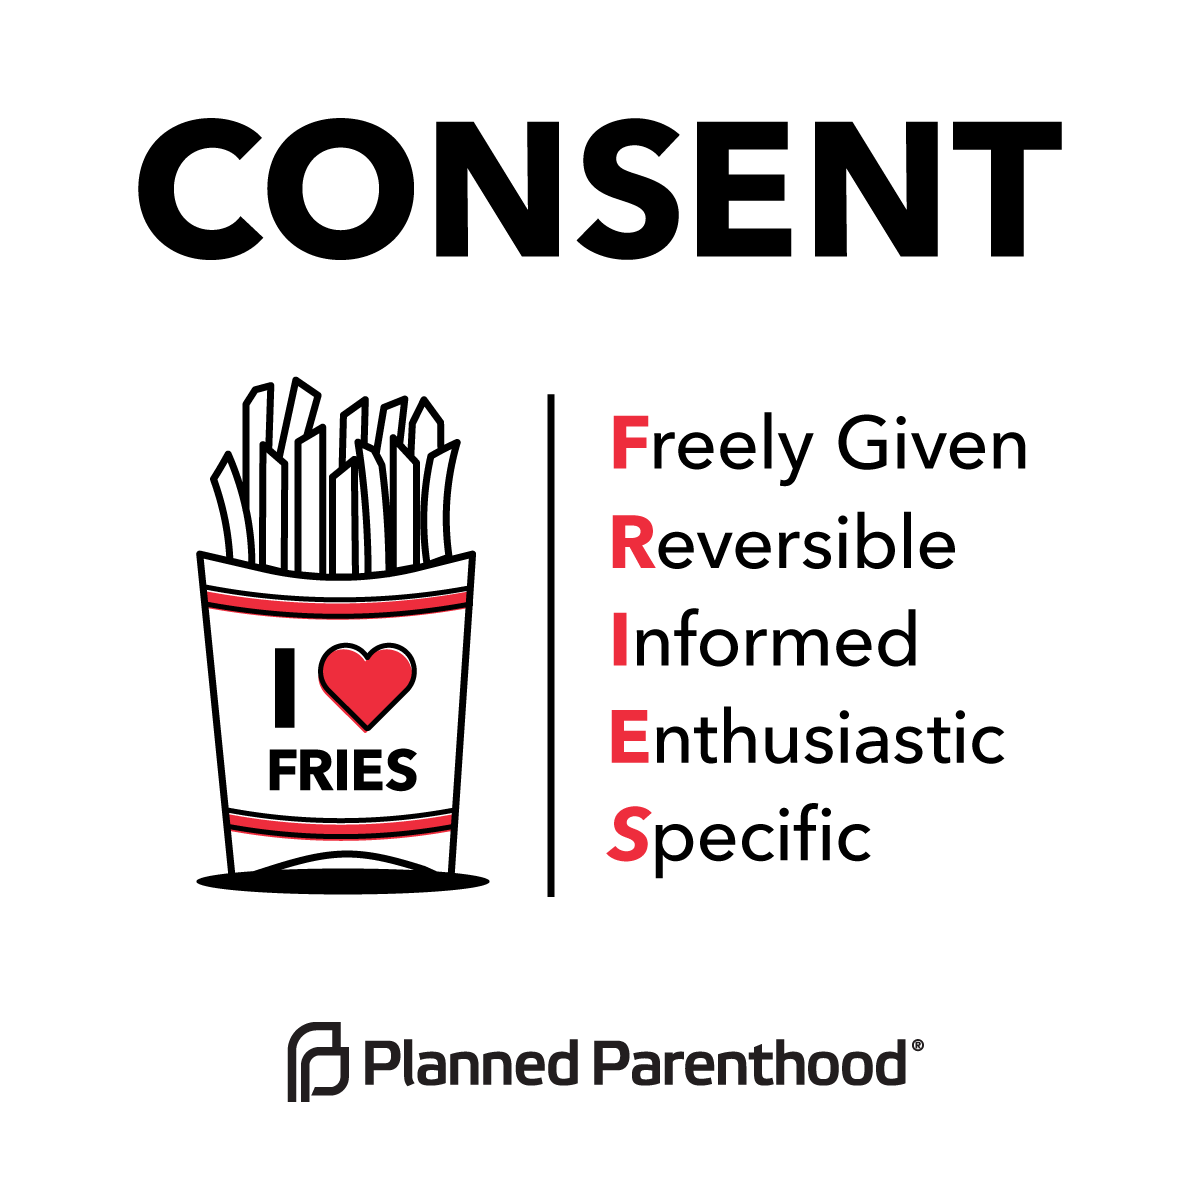 enthusiastic consent and prostitution are incompatible